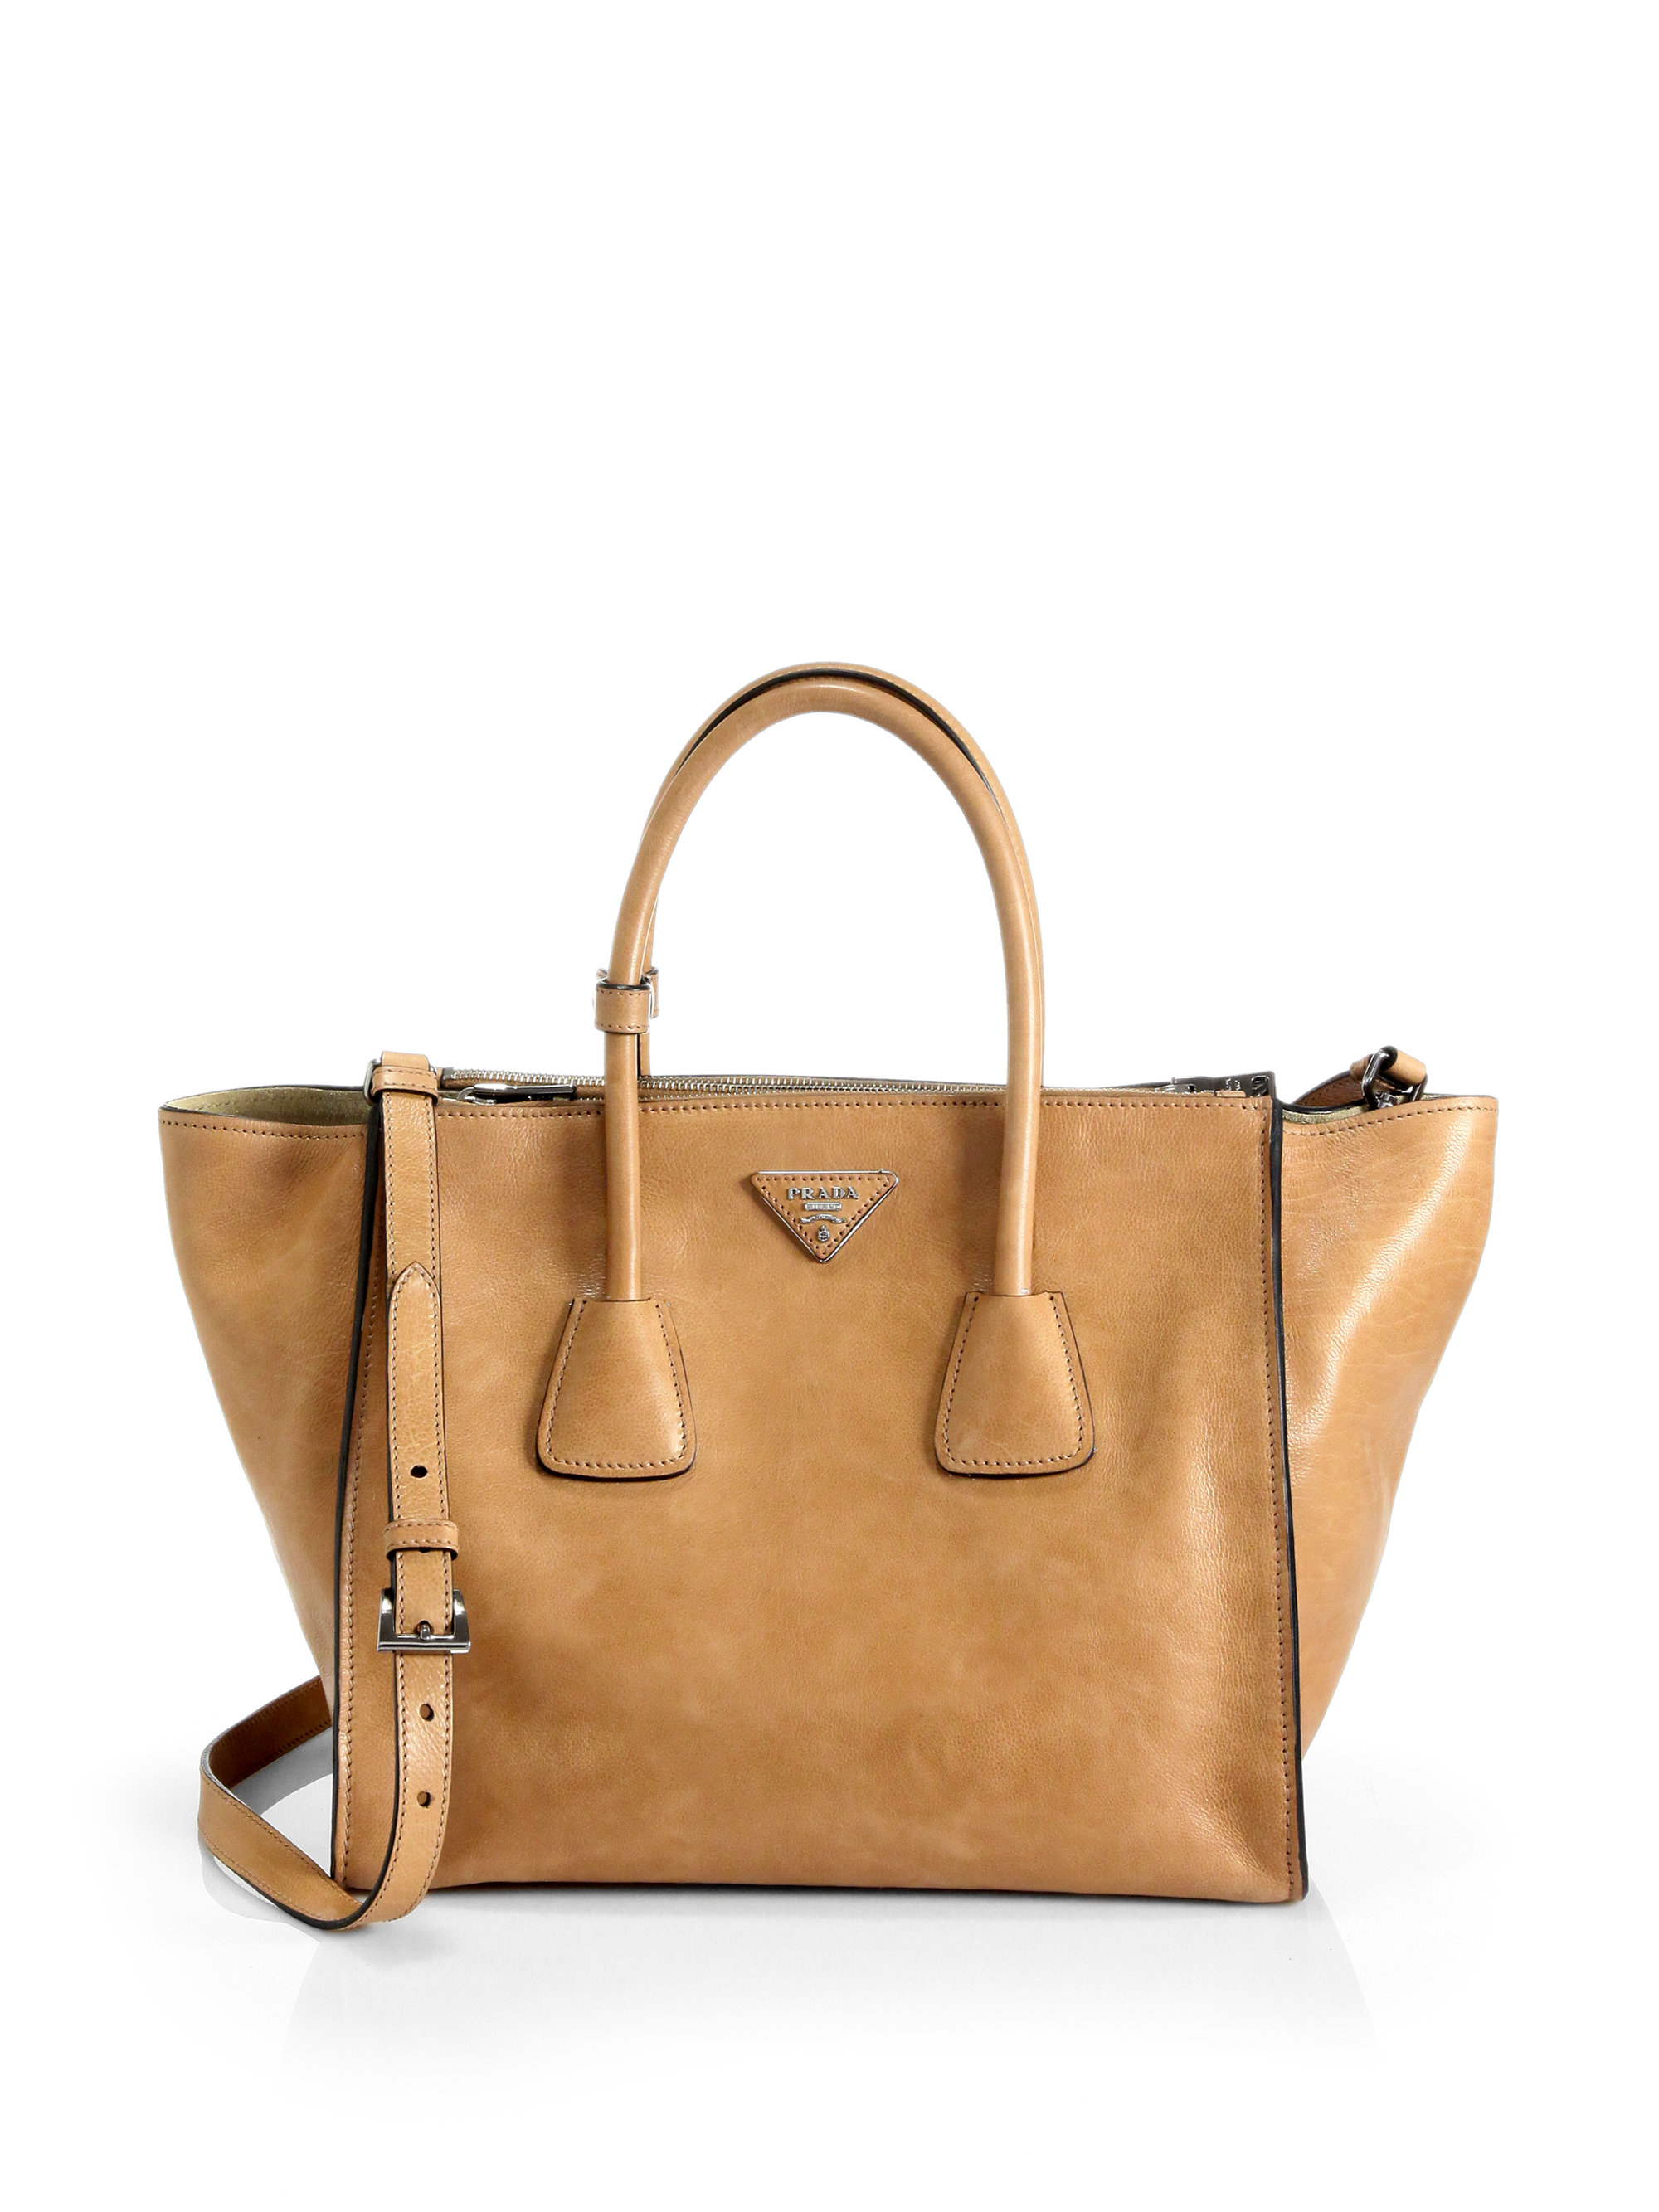 4fe94a648afb30 Prada Glace Calf Twin Pocket Tote in Brown - Lyst